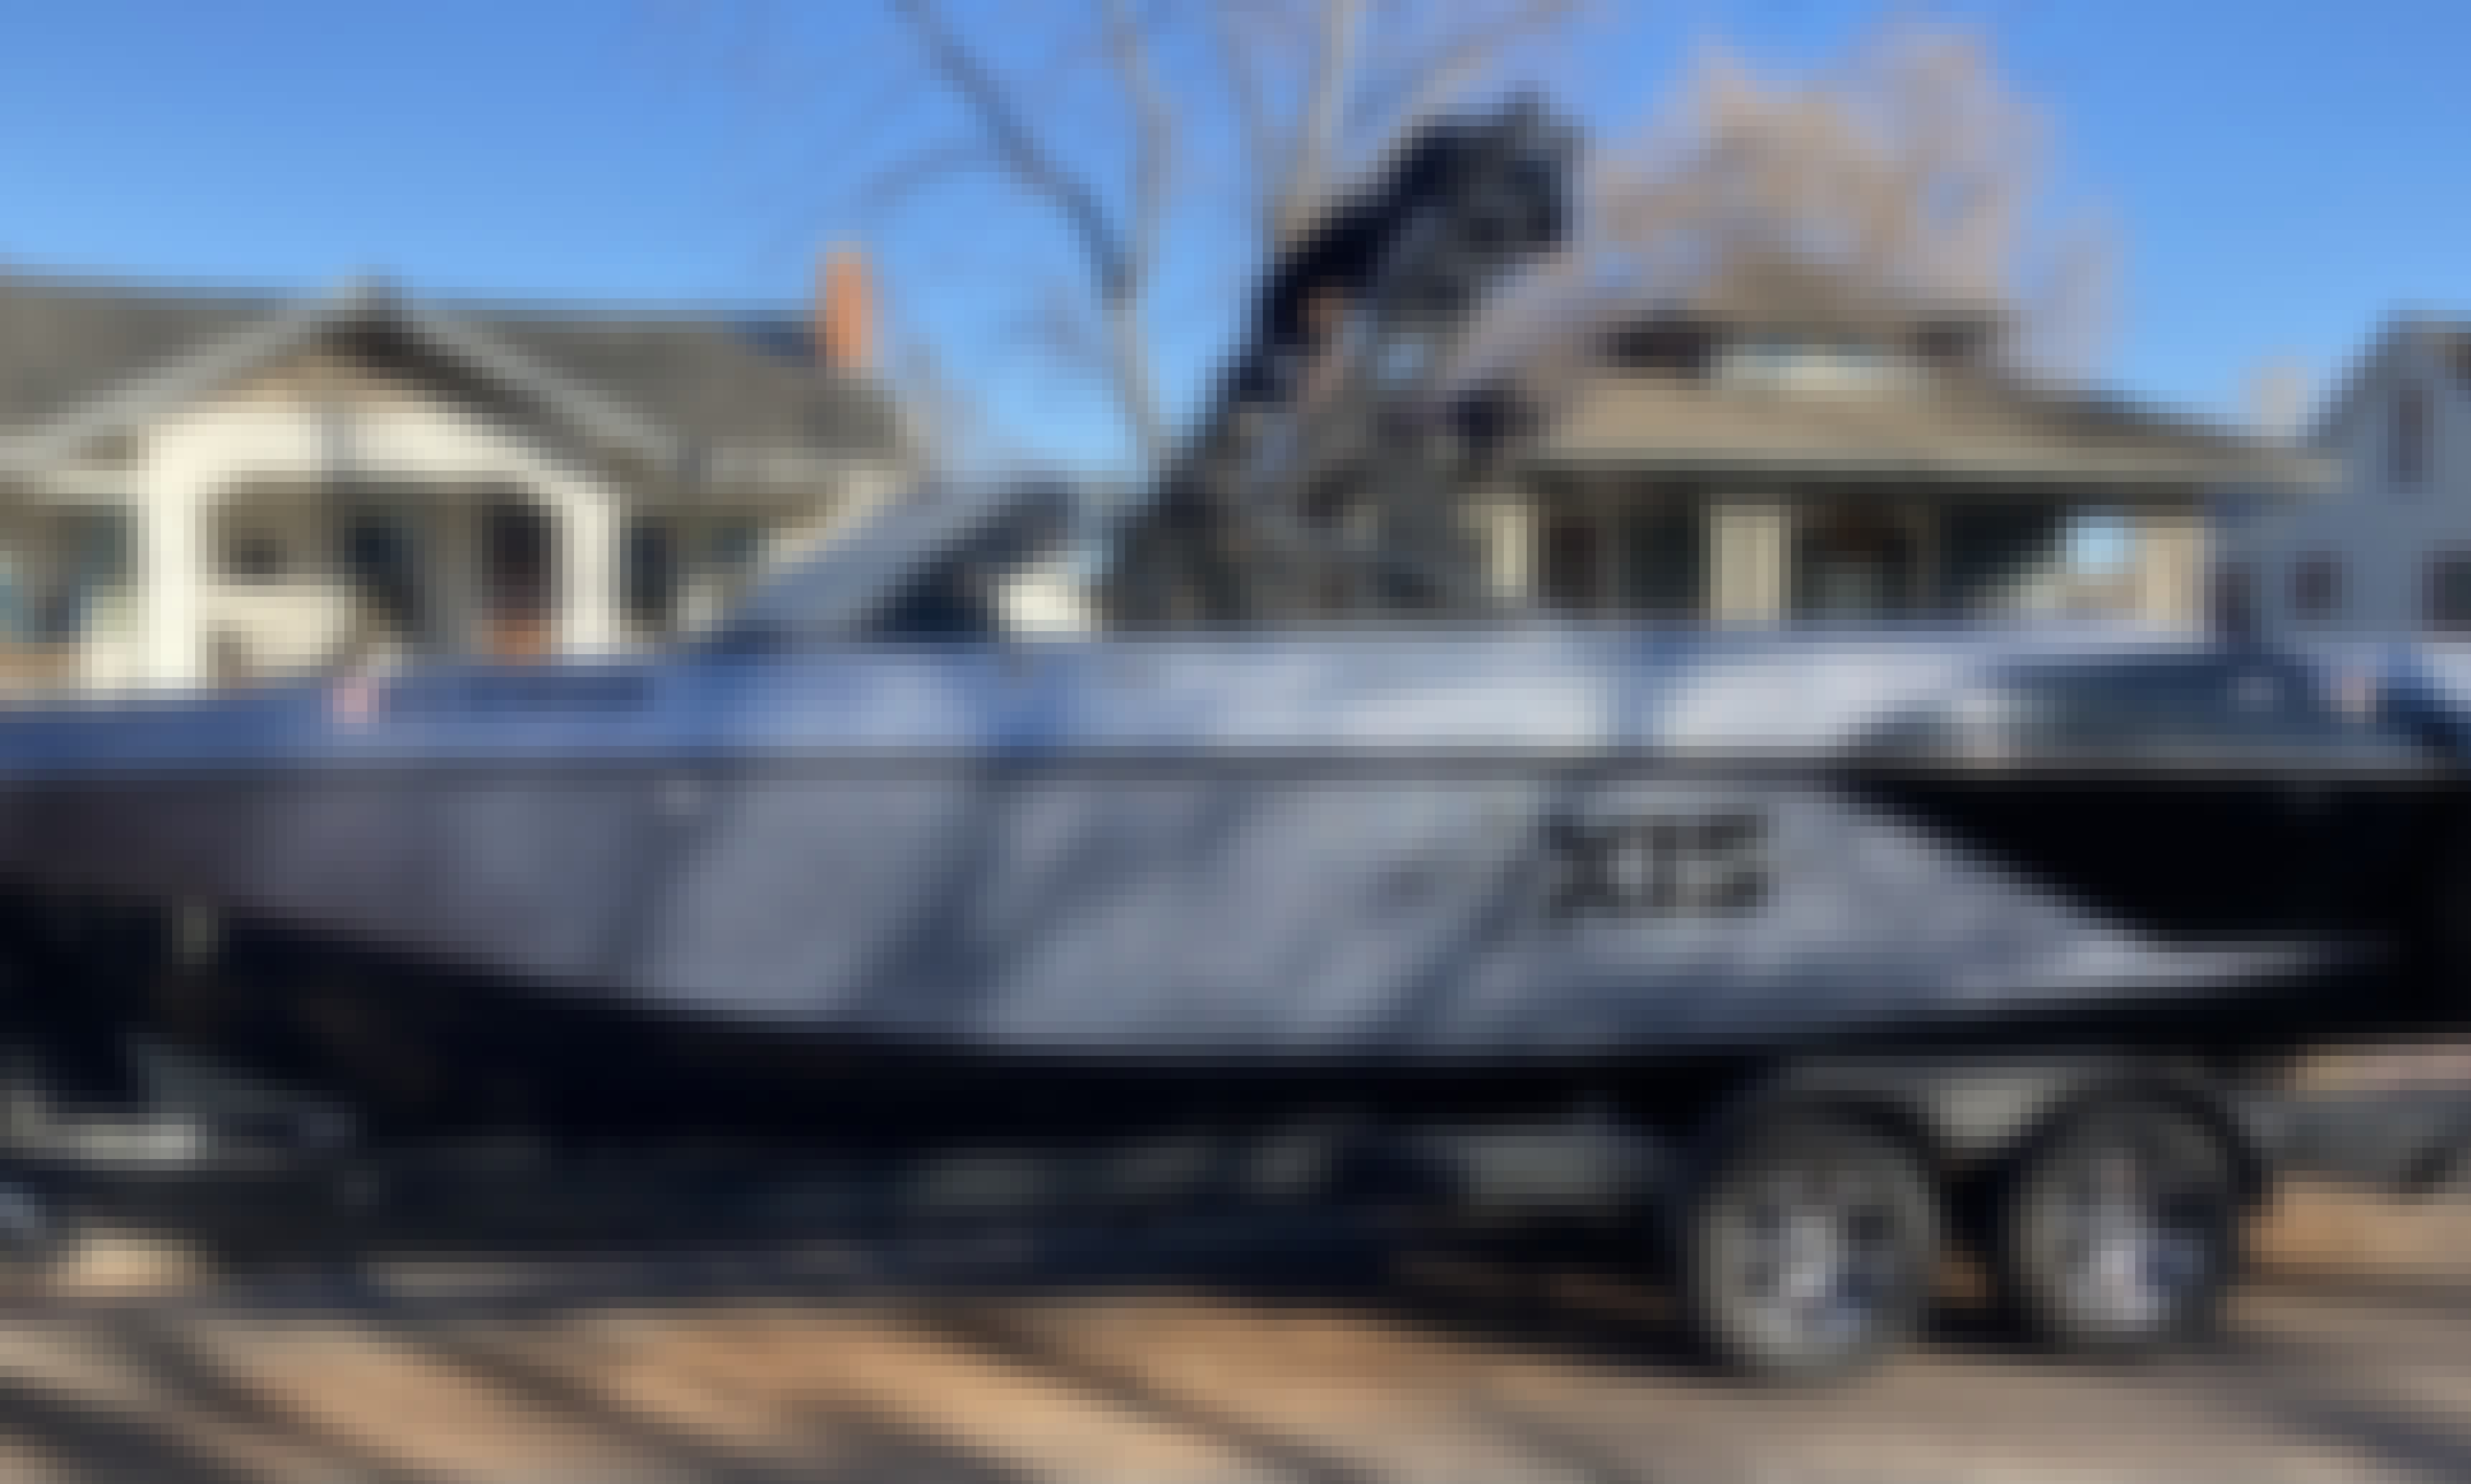 Axis surf boat in Northeast CO